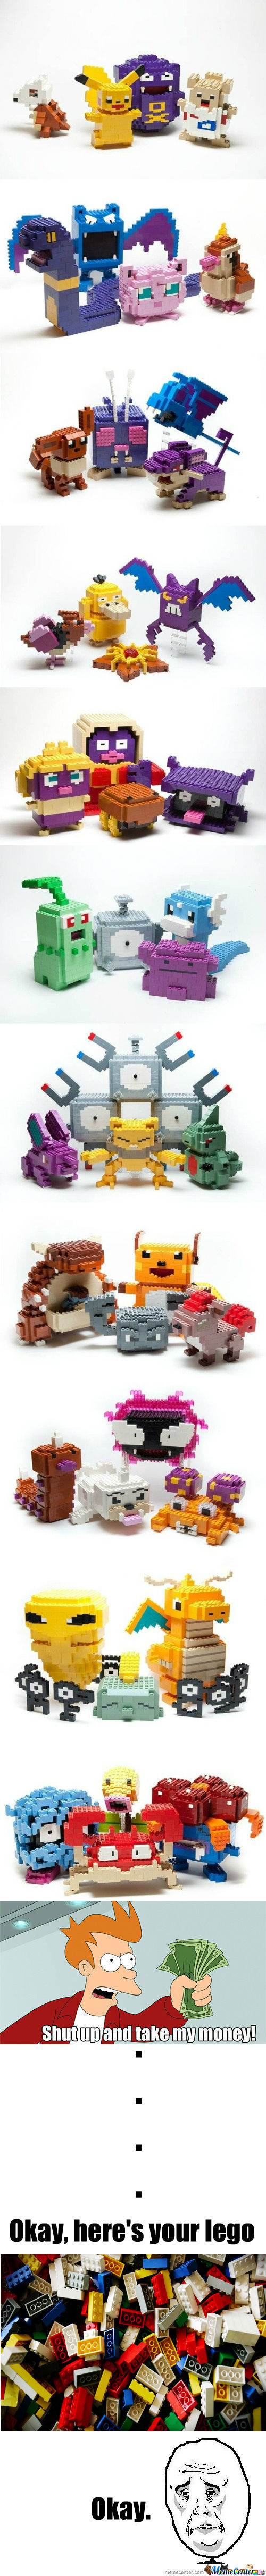 [RMX] [RMX] Awesome lego sculptures - Pokemon